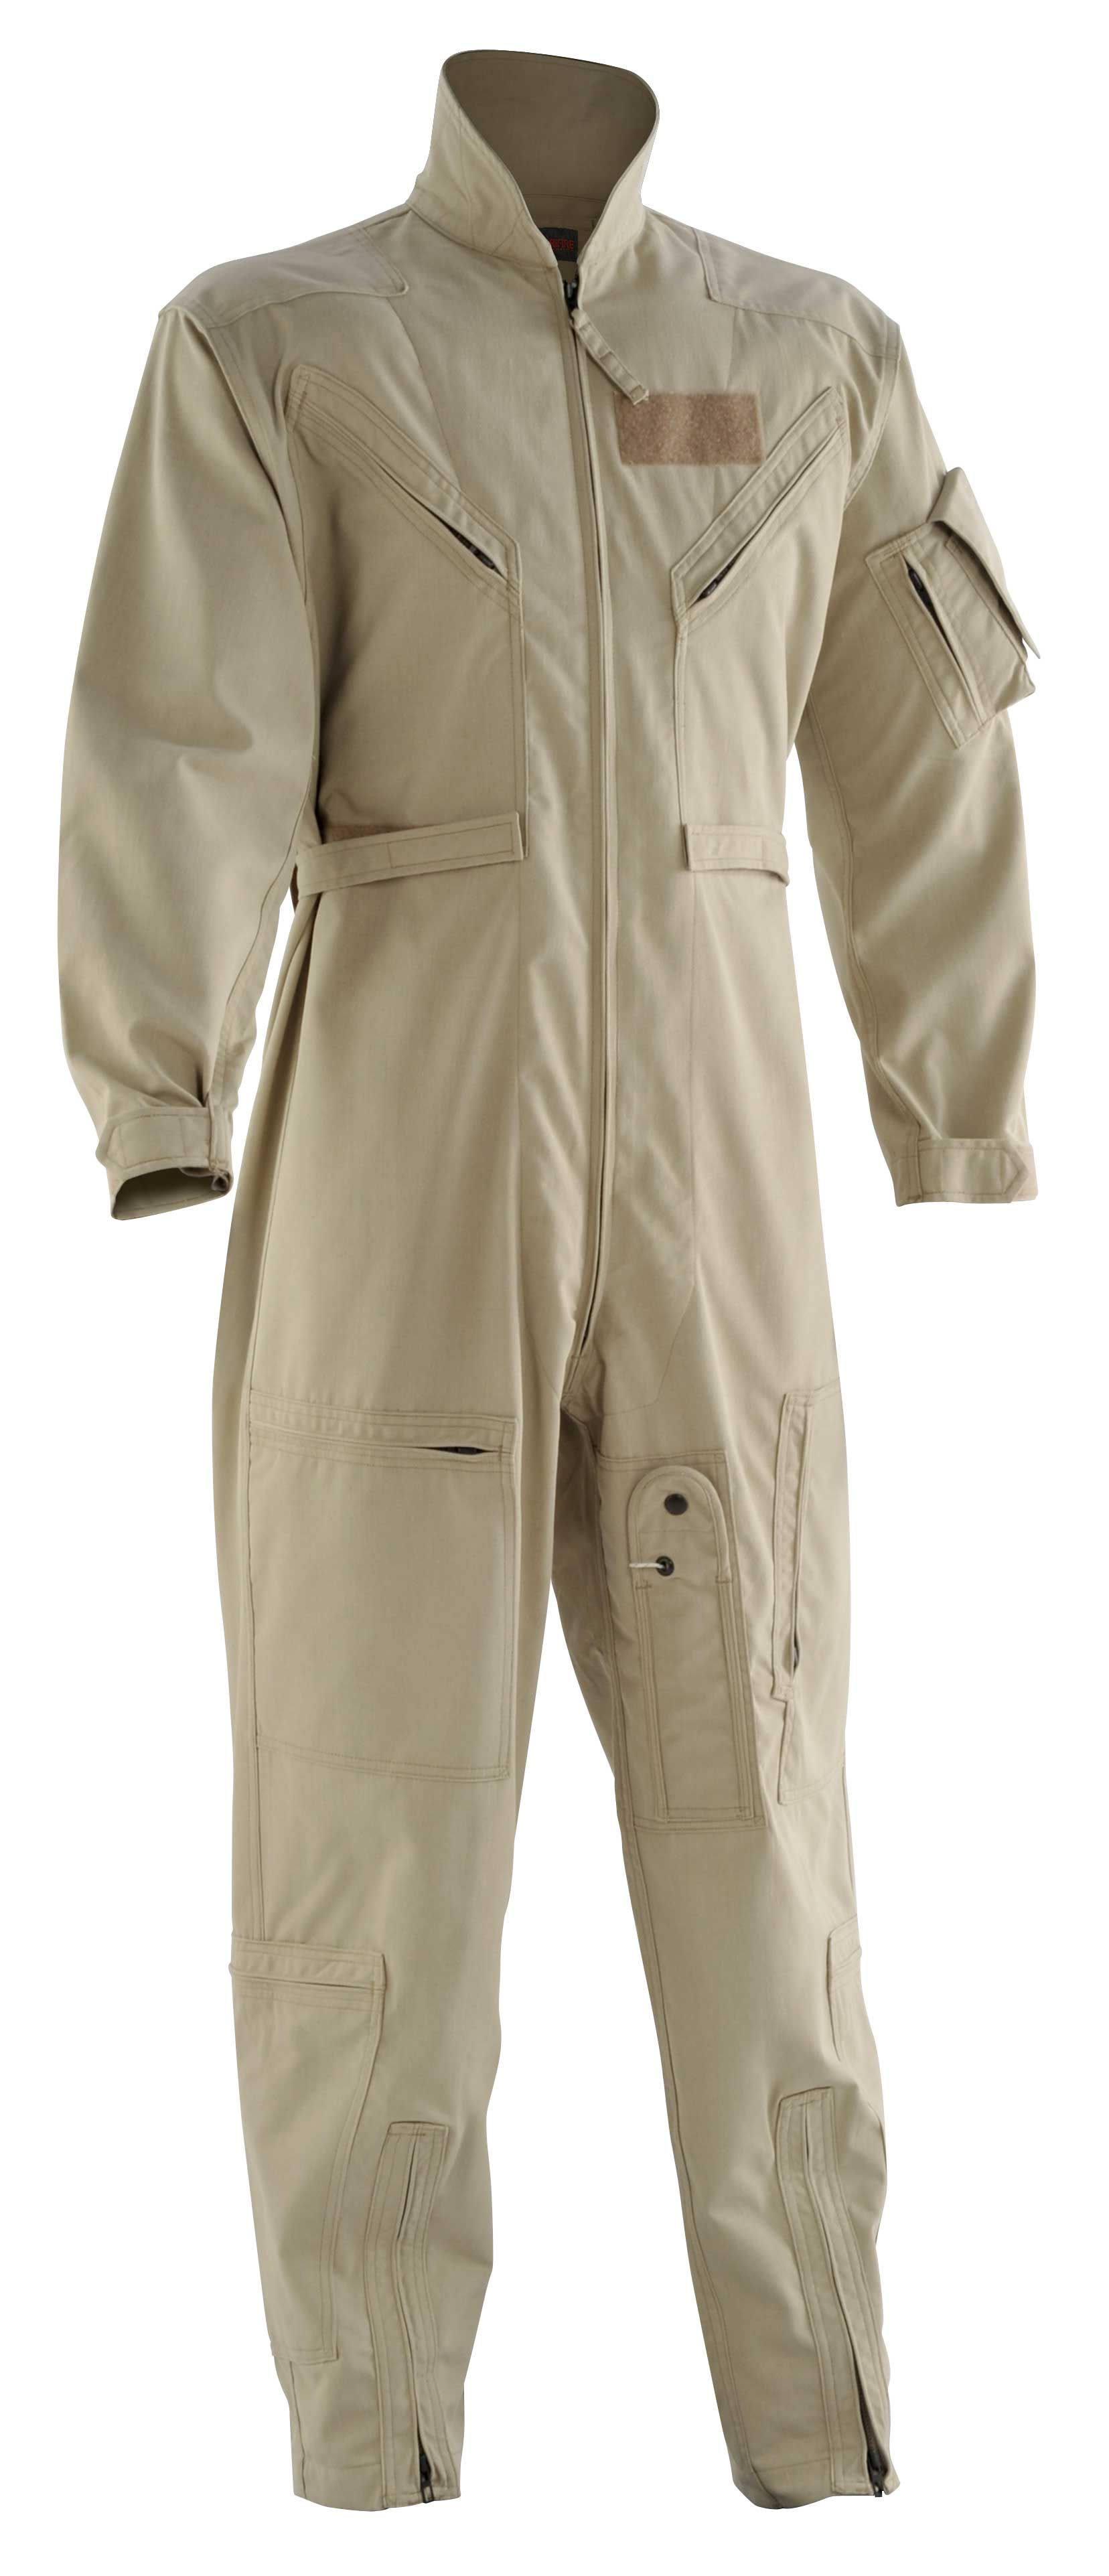 Drifire 1 Piece Flight Suit Desert Sand Tactical Clothing Fashion Military Fashion